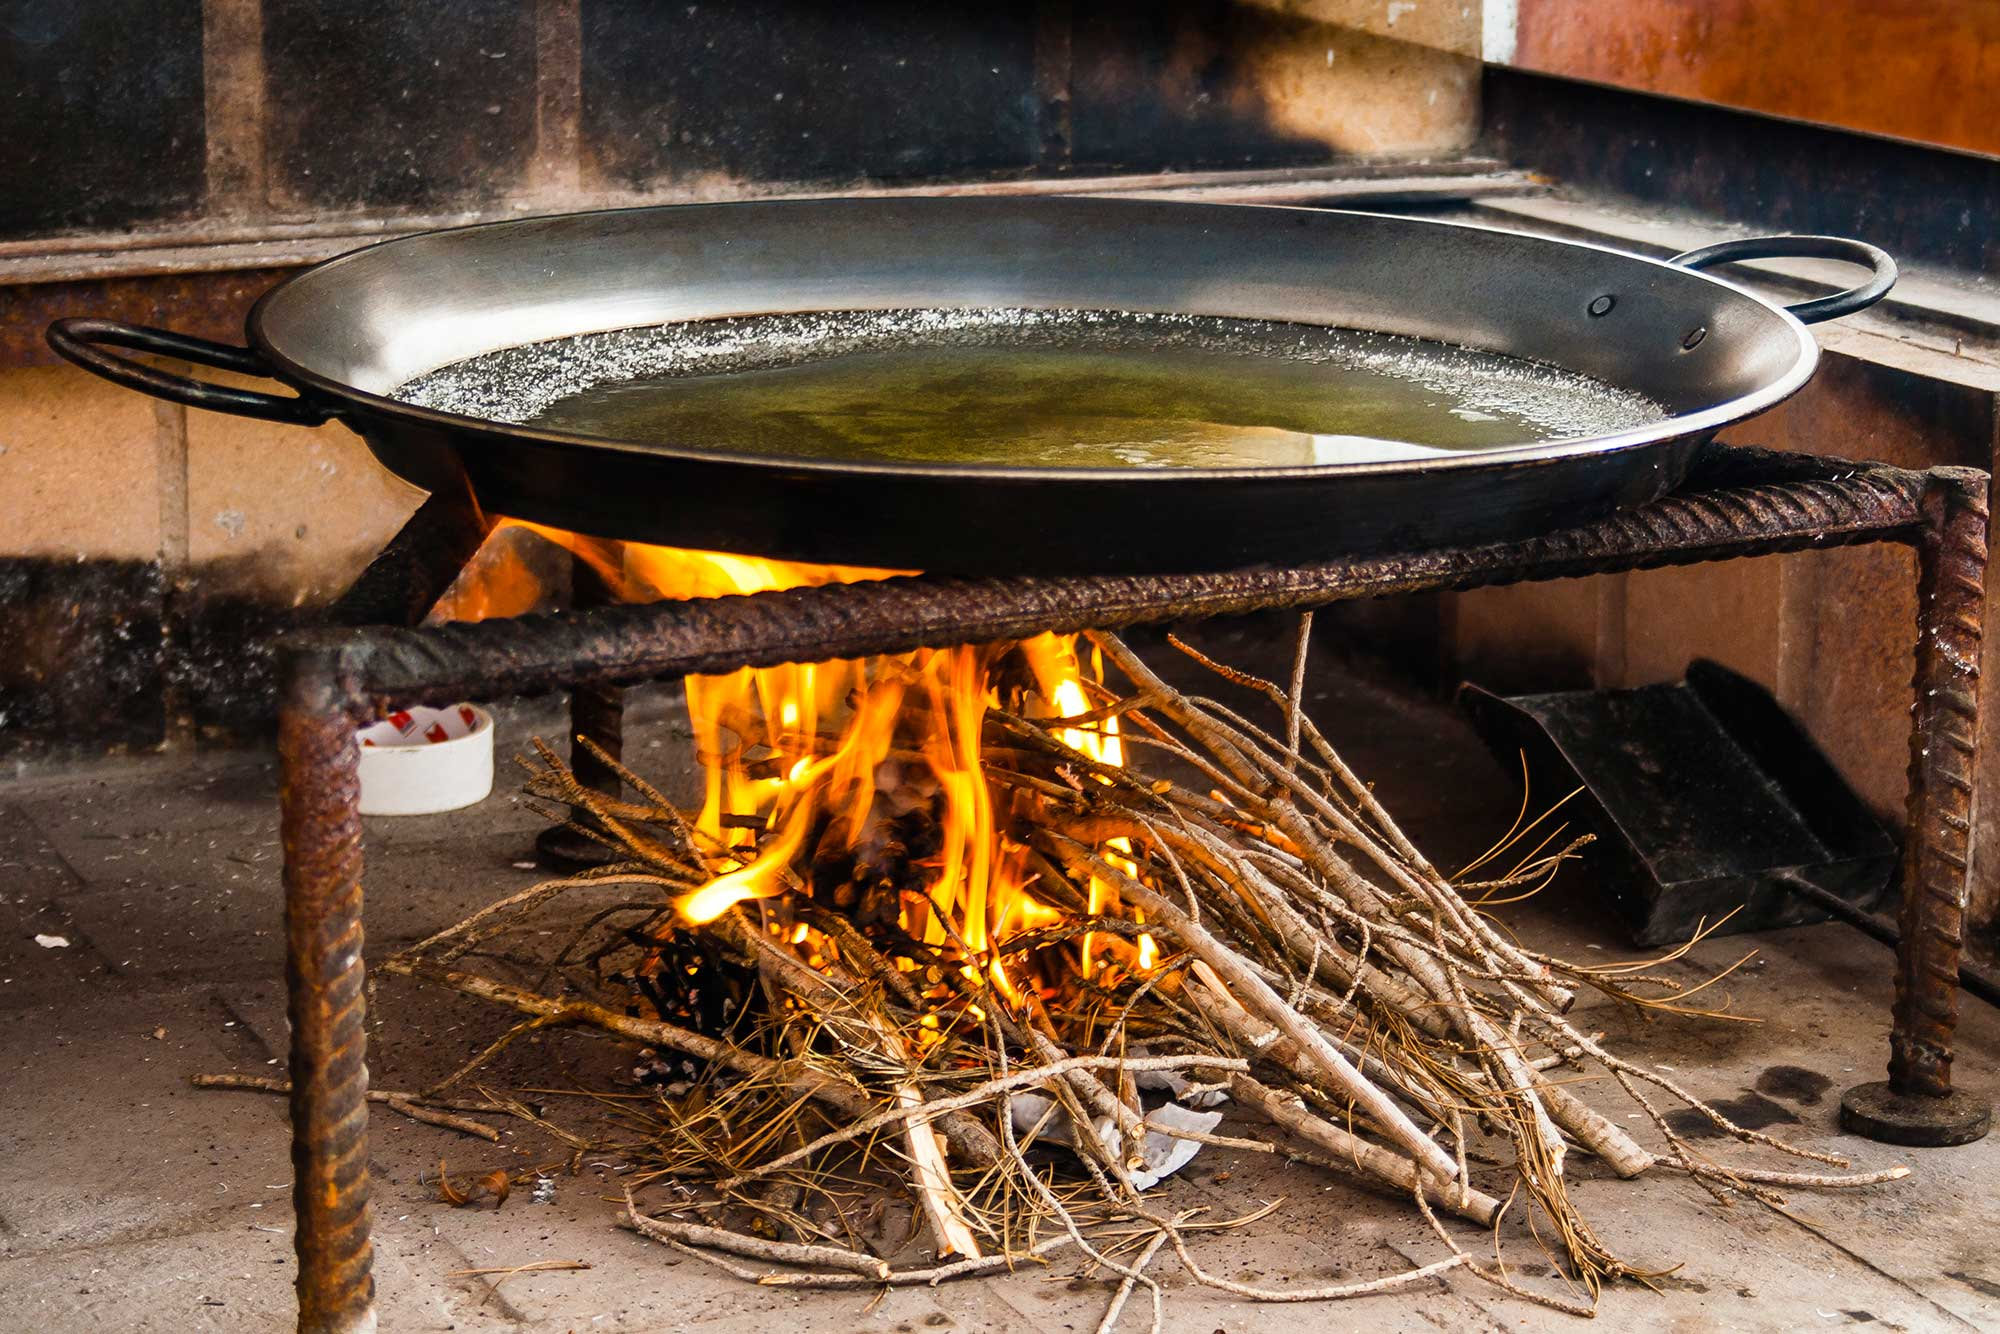 Paella pan heating with oil